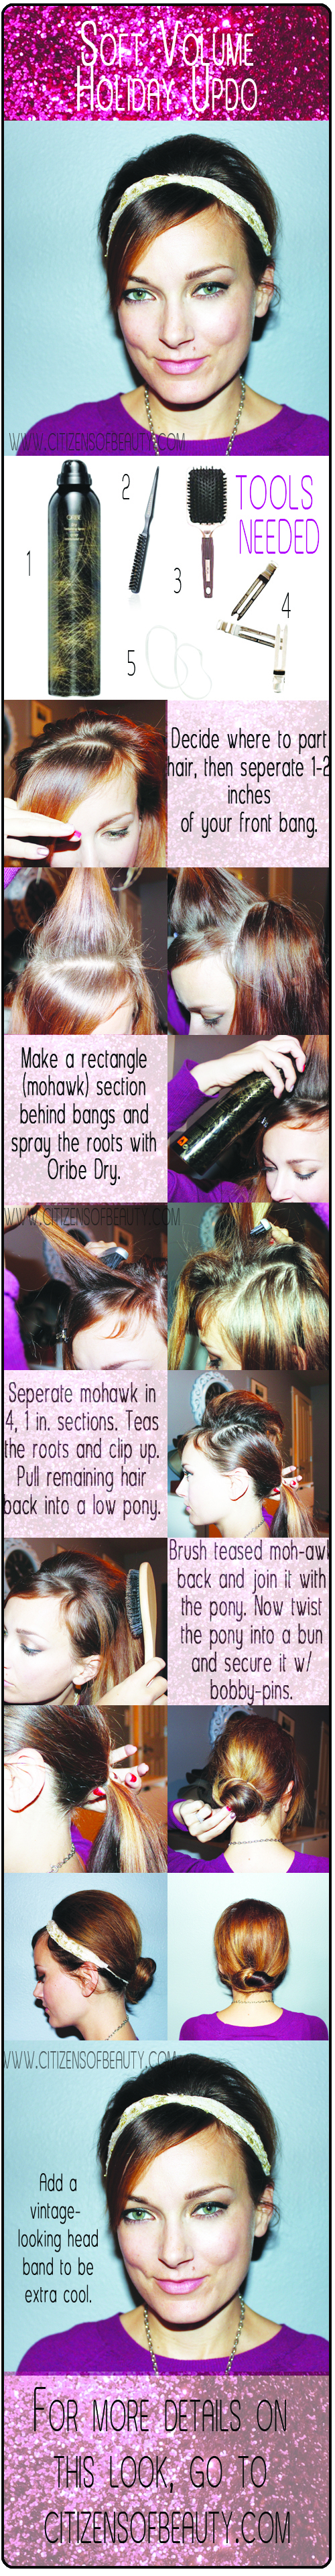 holiday-hair-guide copy copy